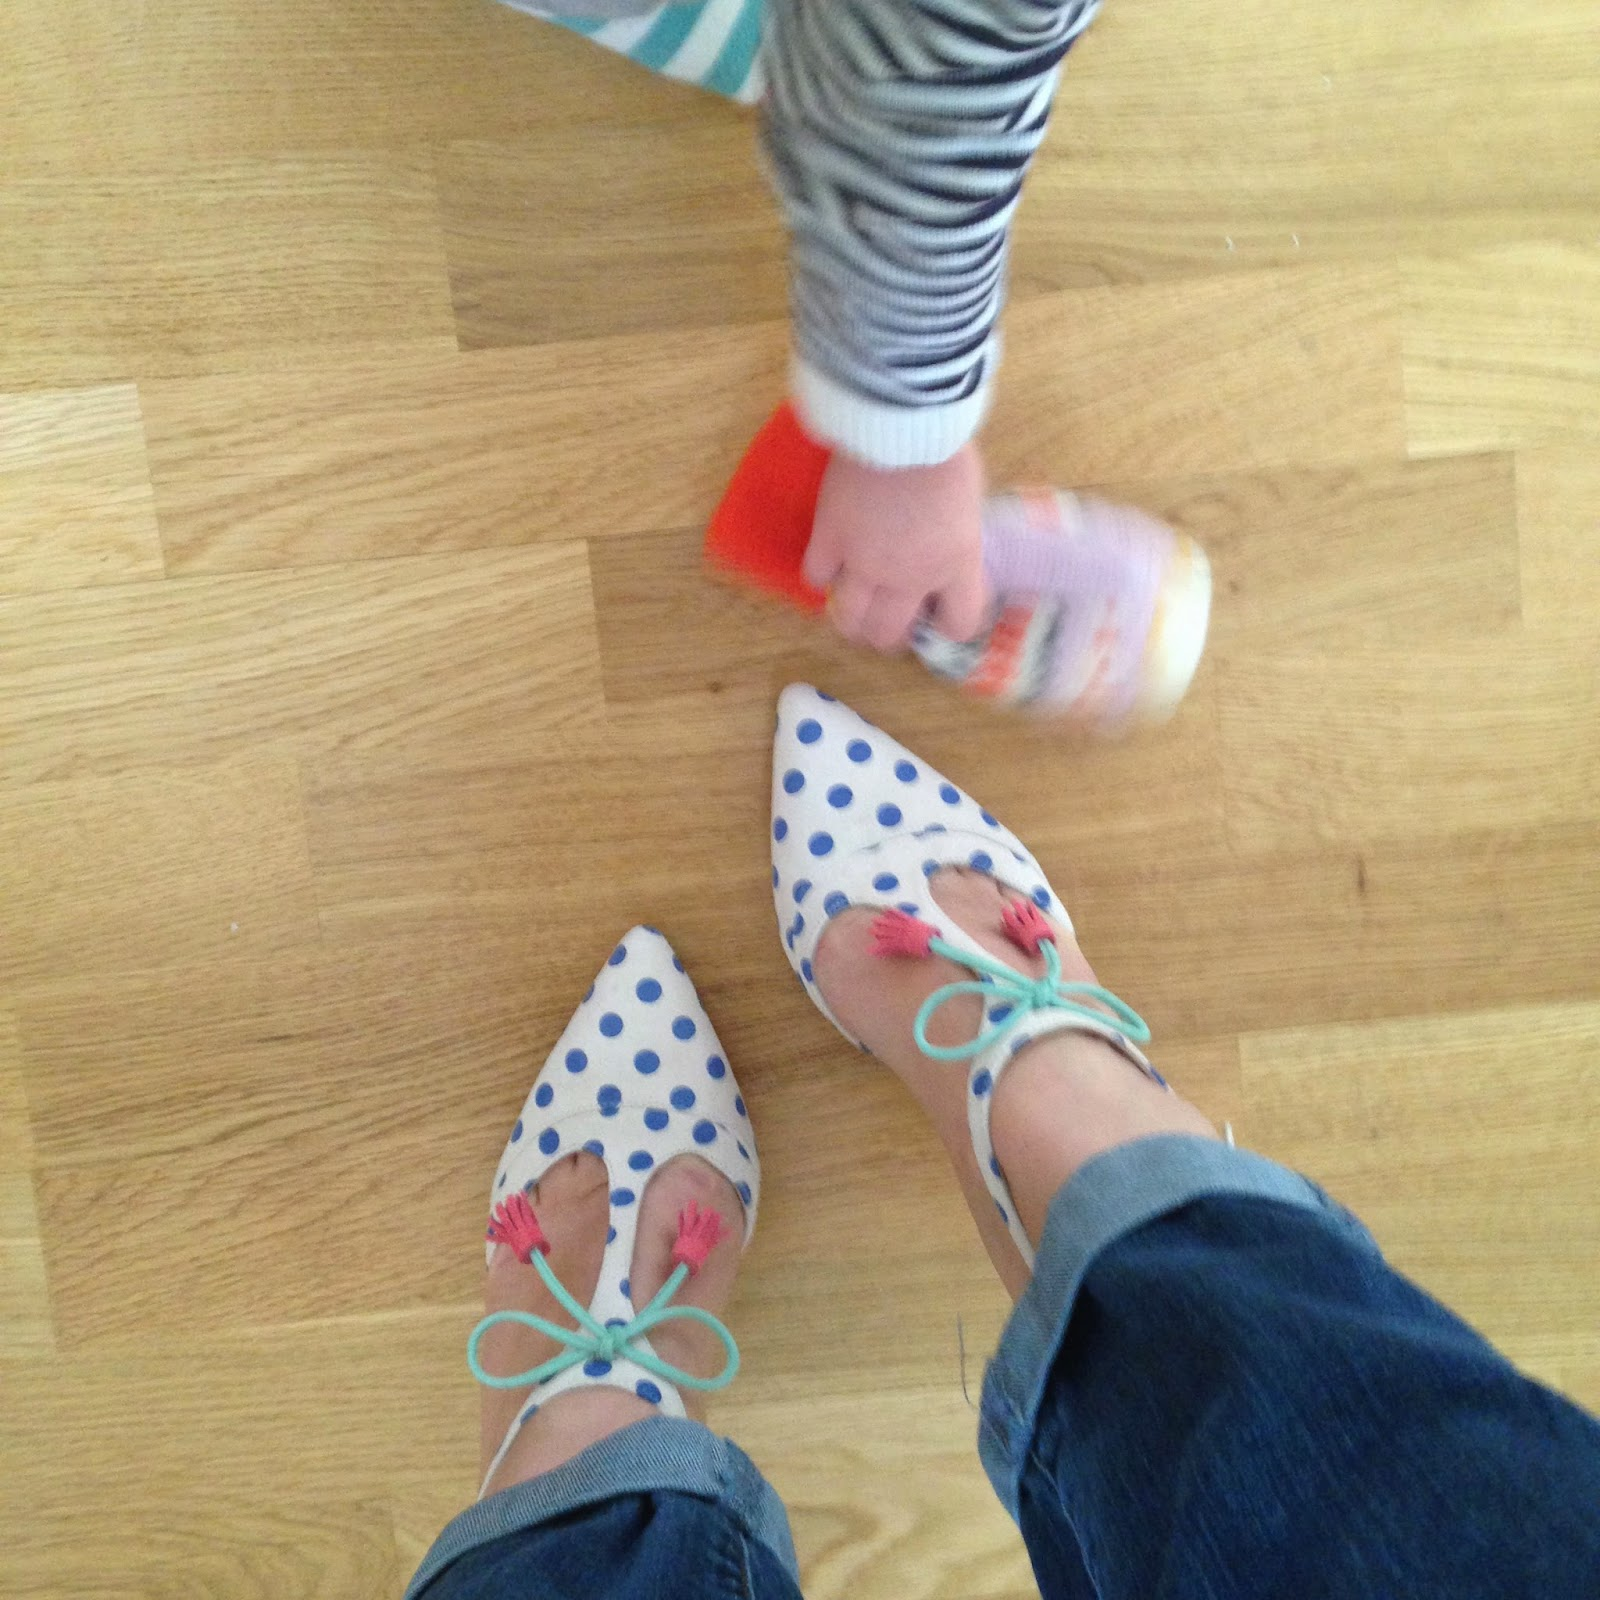 mamasVIB   mamasvib  V. I. BUYS: Welcome to #mamamondays… National Trust, Poppy England and Boden shoes (again)!   mama mondays   #mamasmondays   mamasVIb   blog   bonita Turner   national trust   national trust membership   national trust visitors passport   boden   boden shoes   alice heels   must-have shoes   modelling   child modelling   poppy england   autumn winter 2015   fashion } style   model   kids  toddlers   ammasVIb   blogger   tots top 250